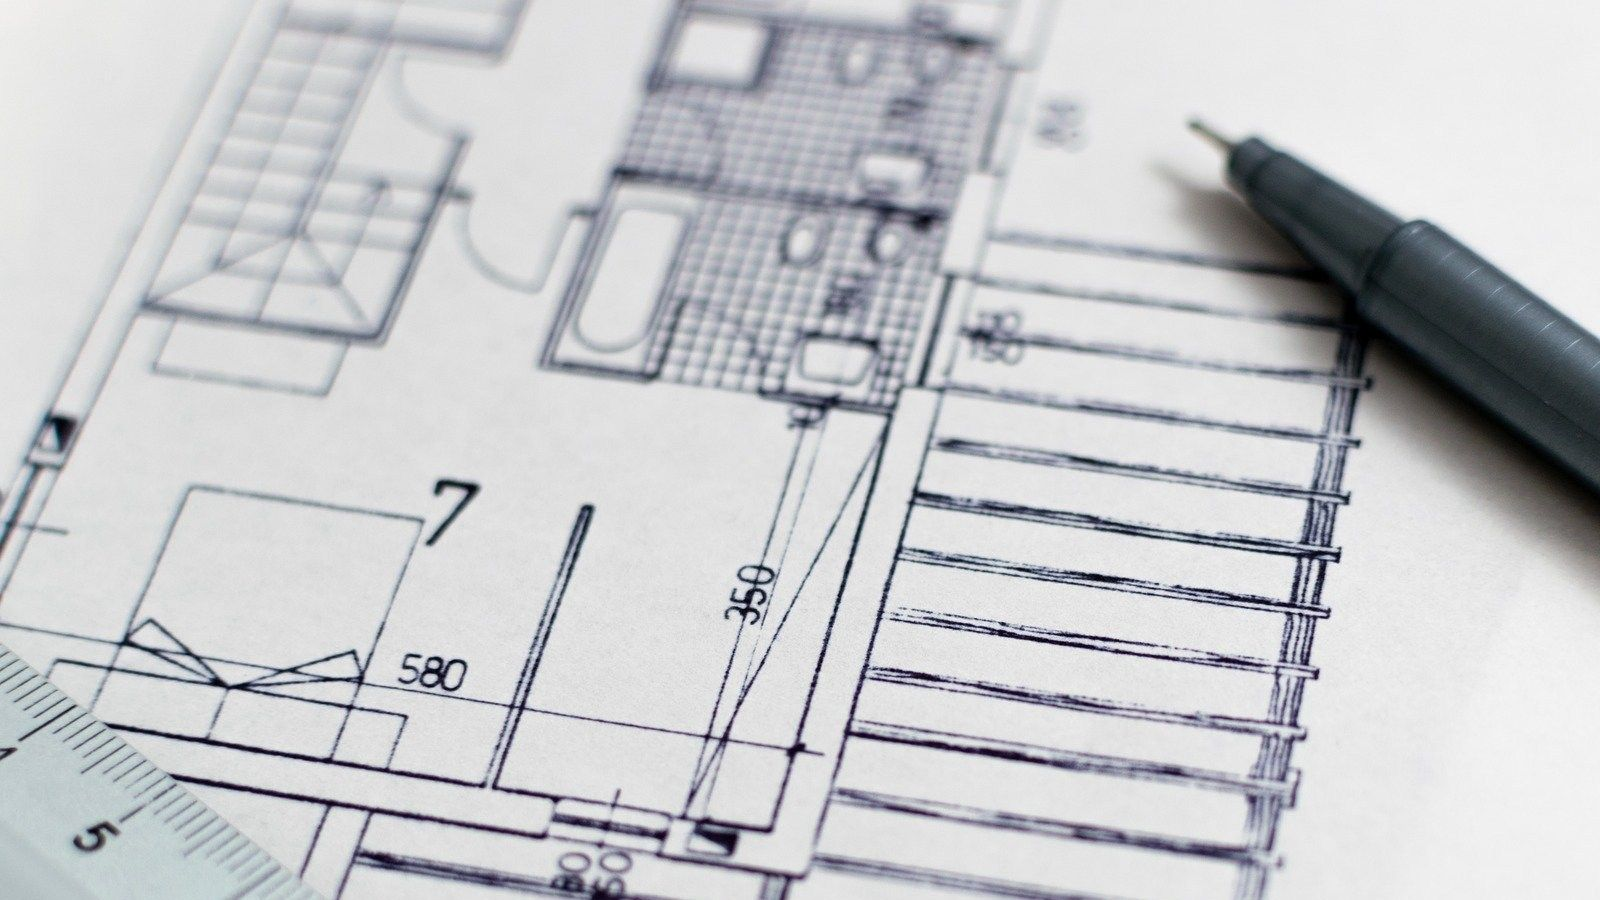 Building plans with black pen laying across them banner image